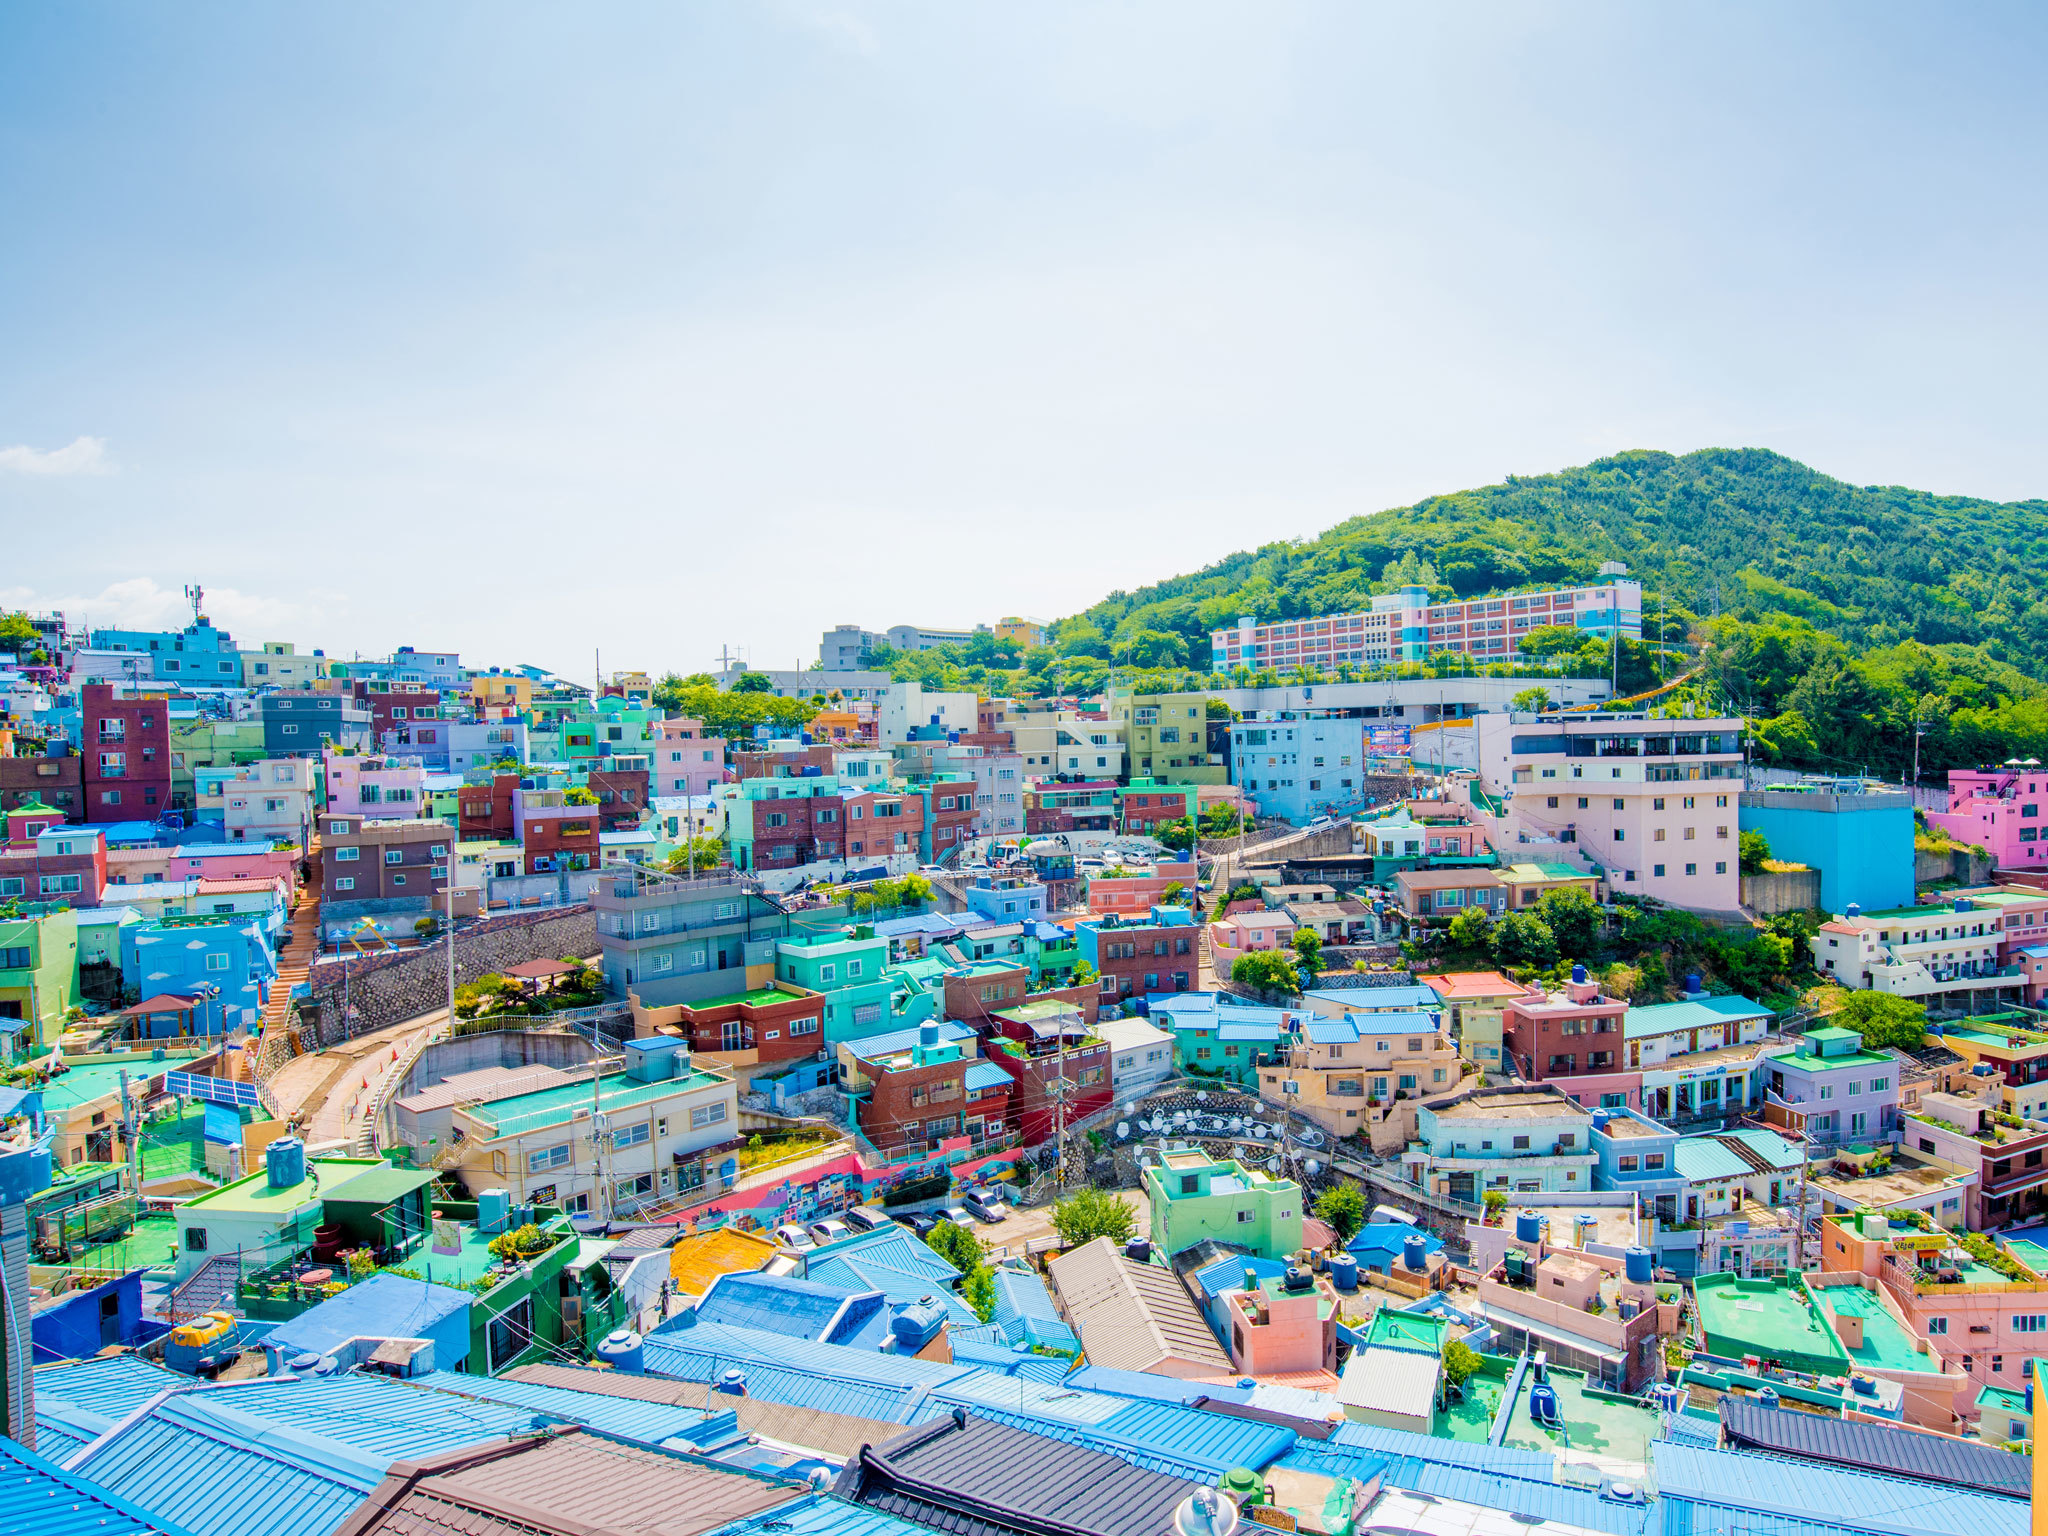 Gamcheon Culture Village - Busan - South Korea